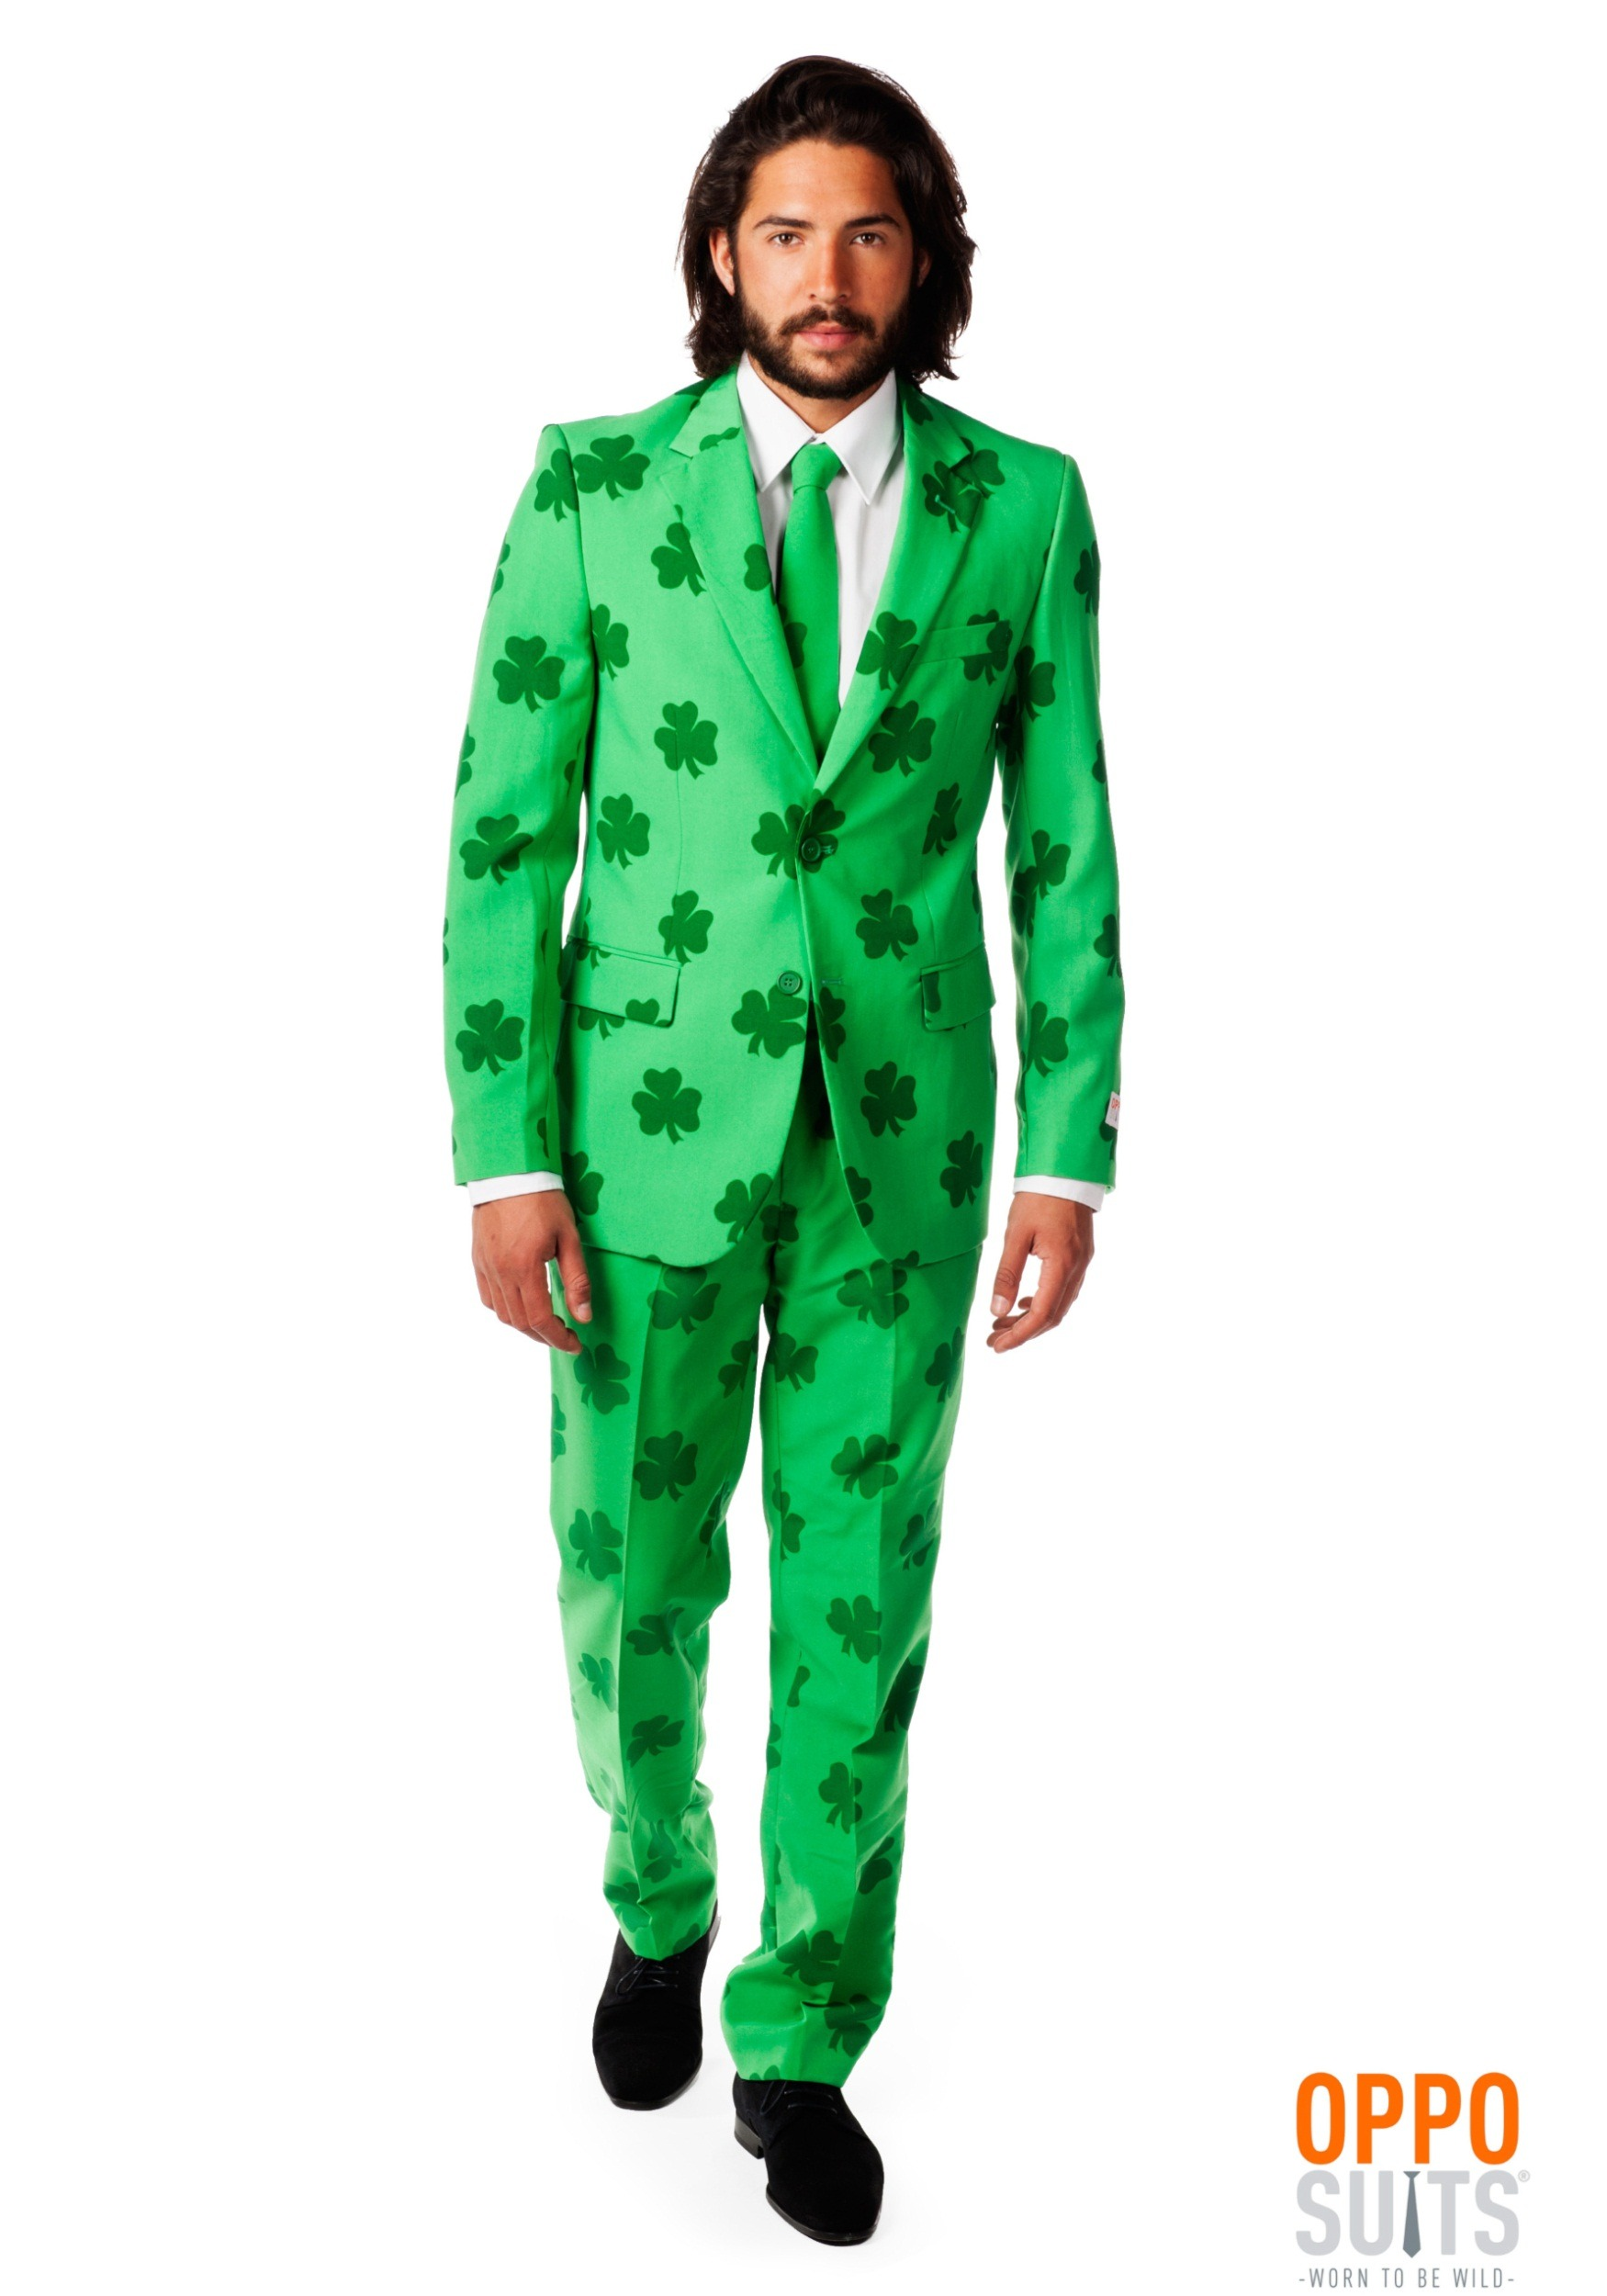 Green Suits For Men Men 39 s Green st Patrick 39 s